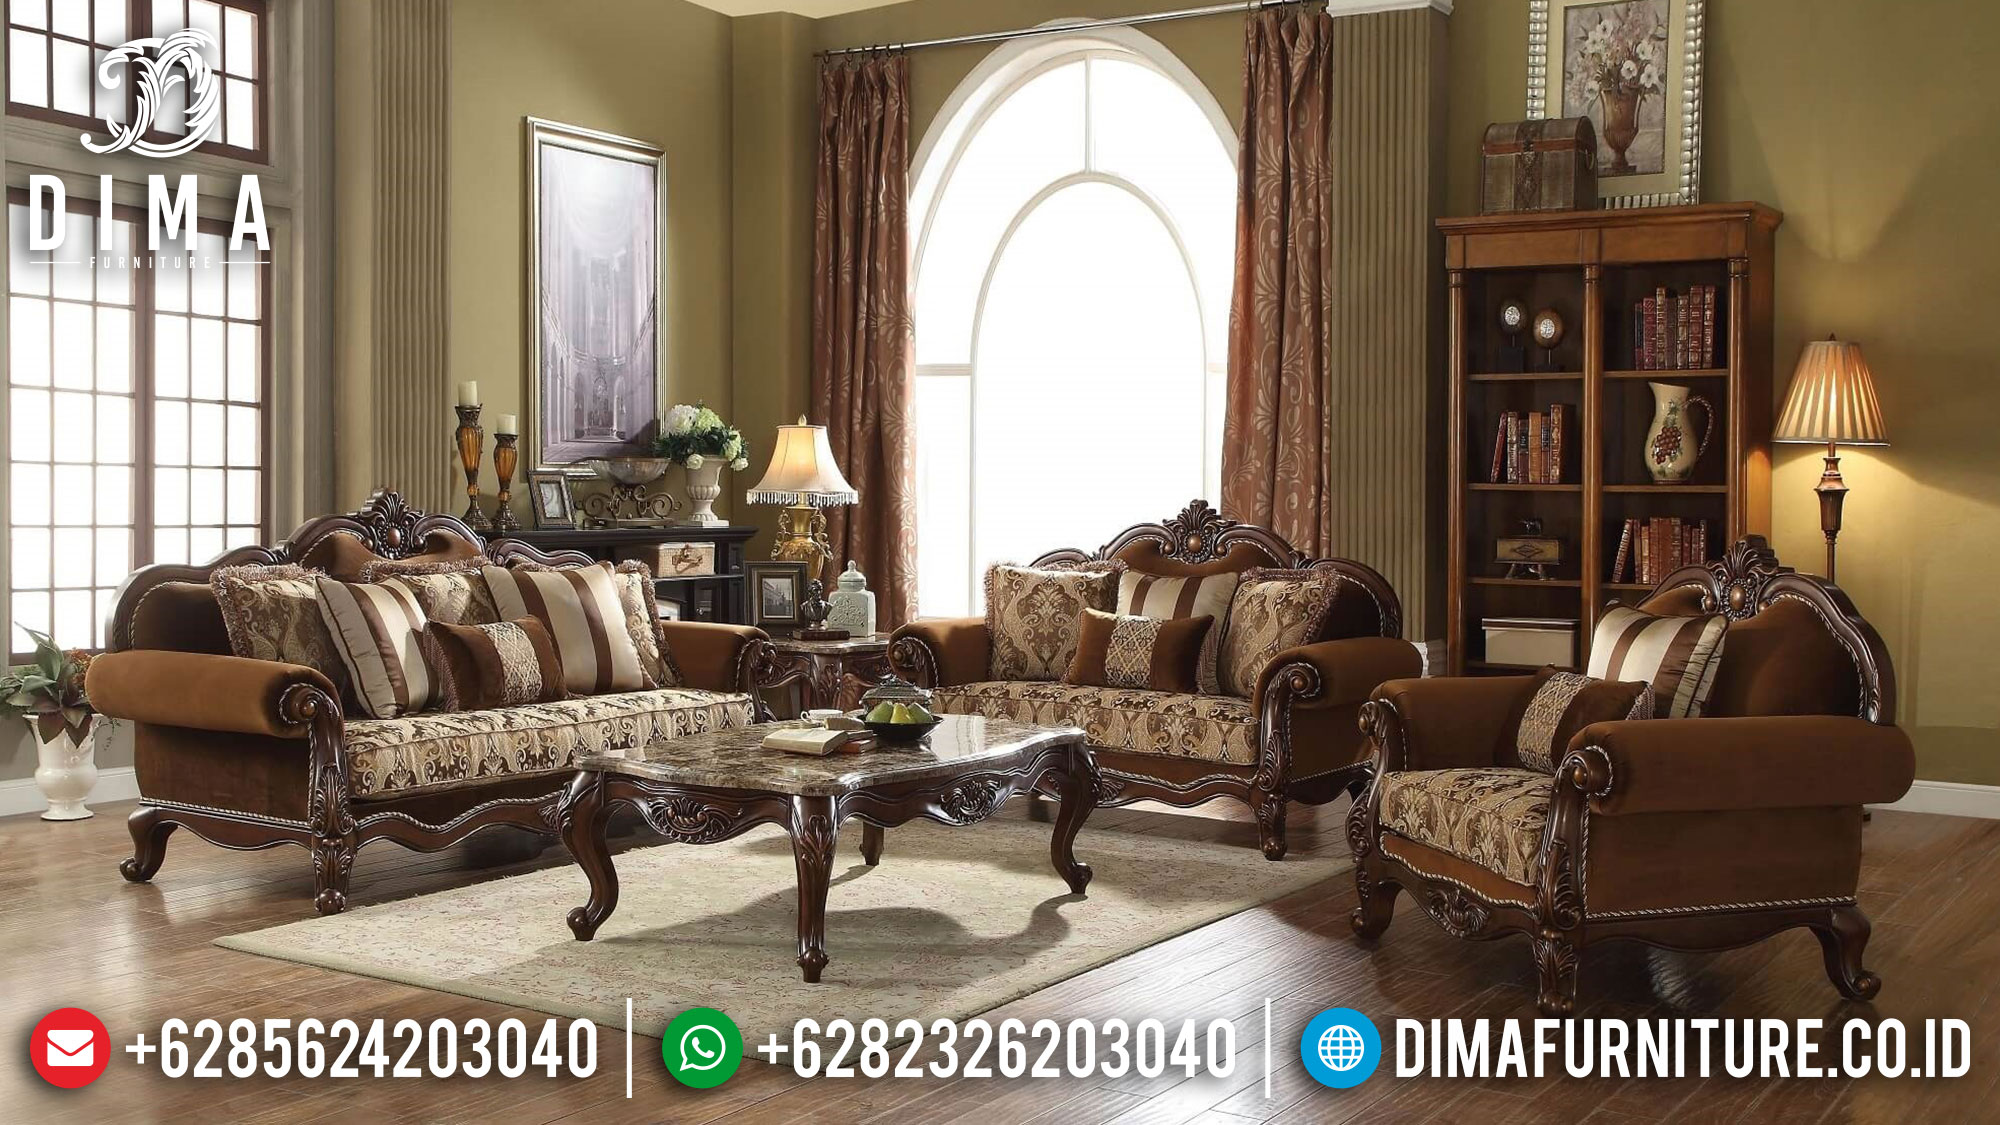 Sale Item Sofa Tamu Mewah Jepara Luxurious Great Design ST-1284